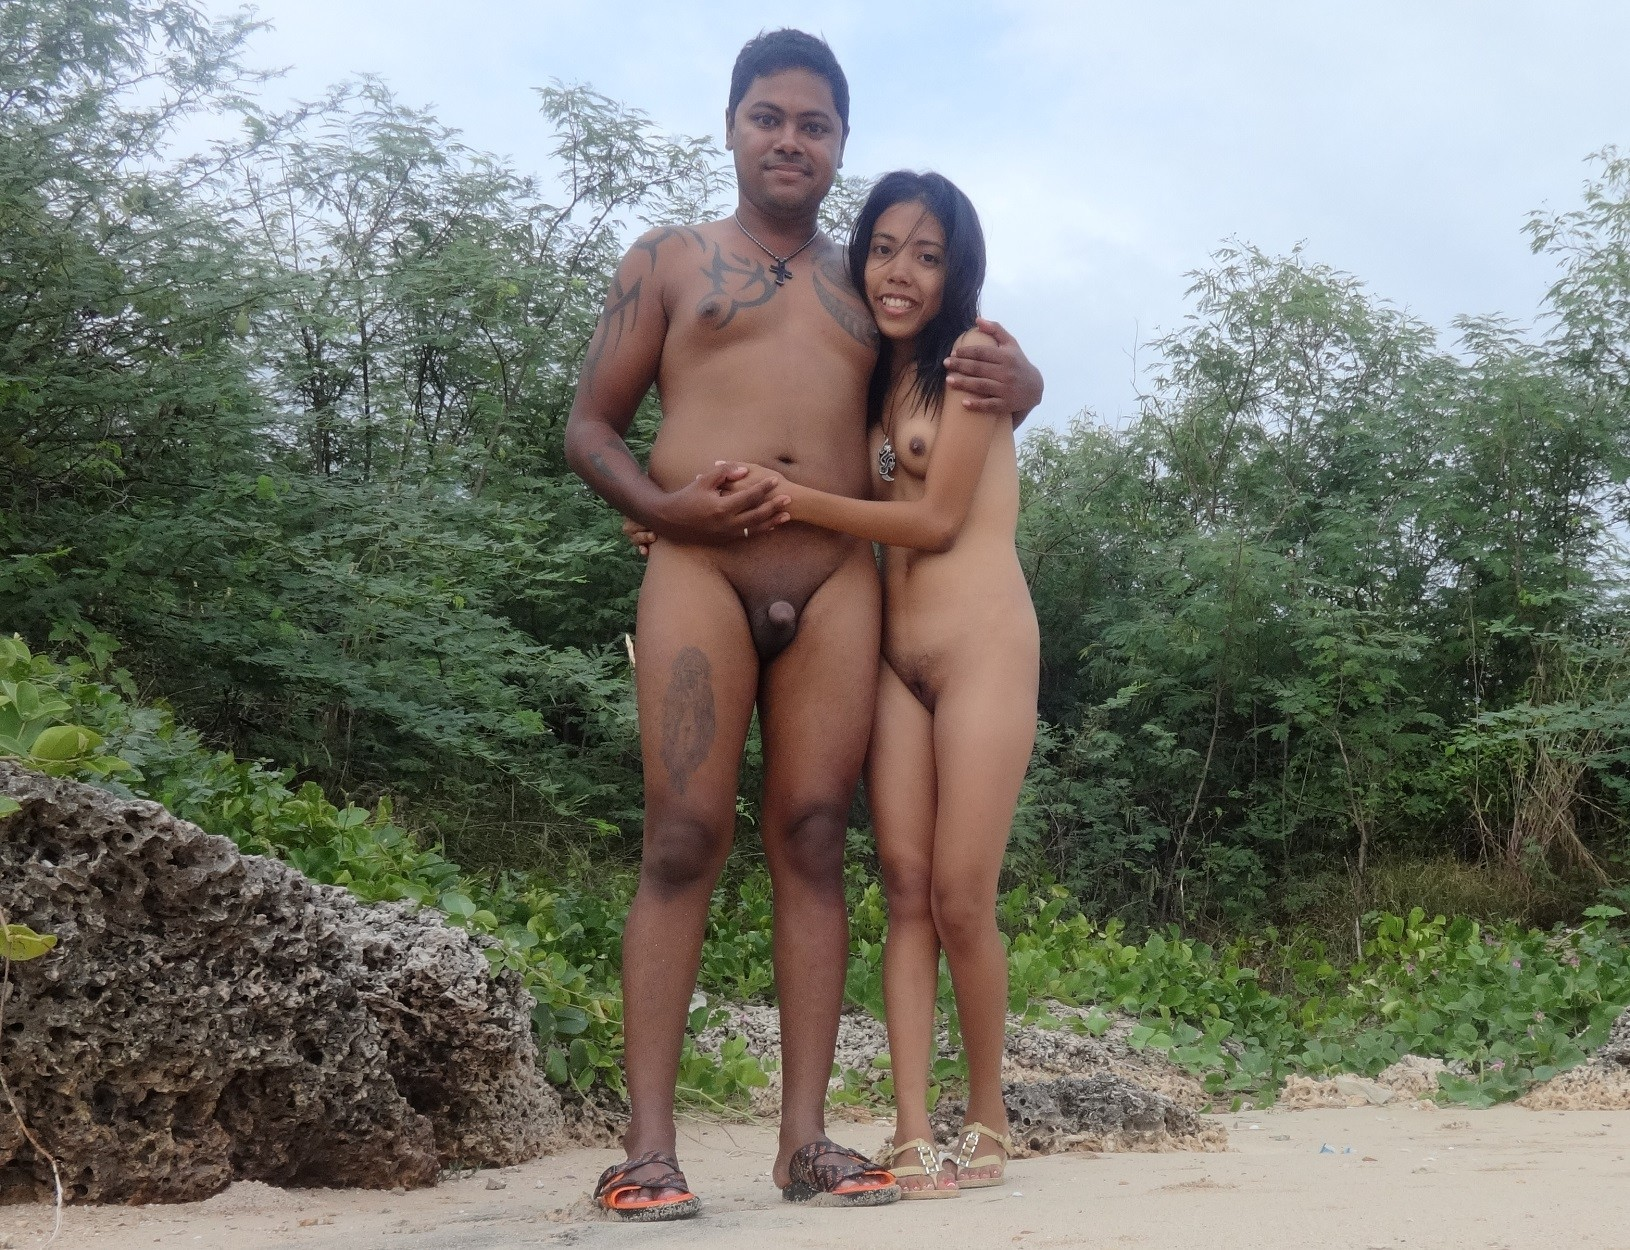 You Nude asian couples this